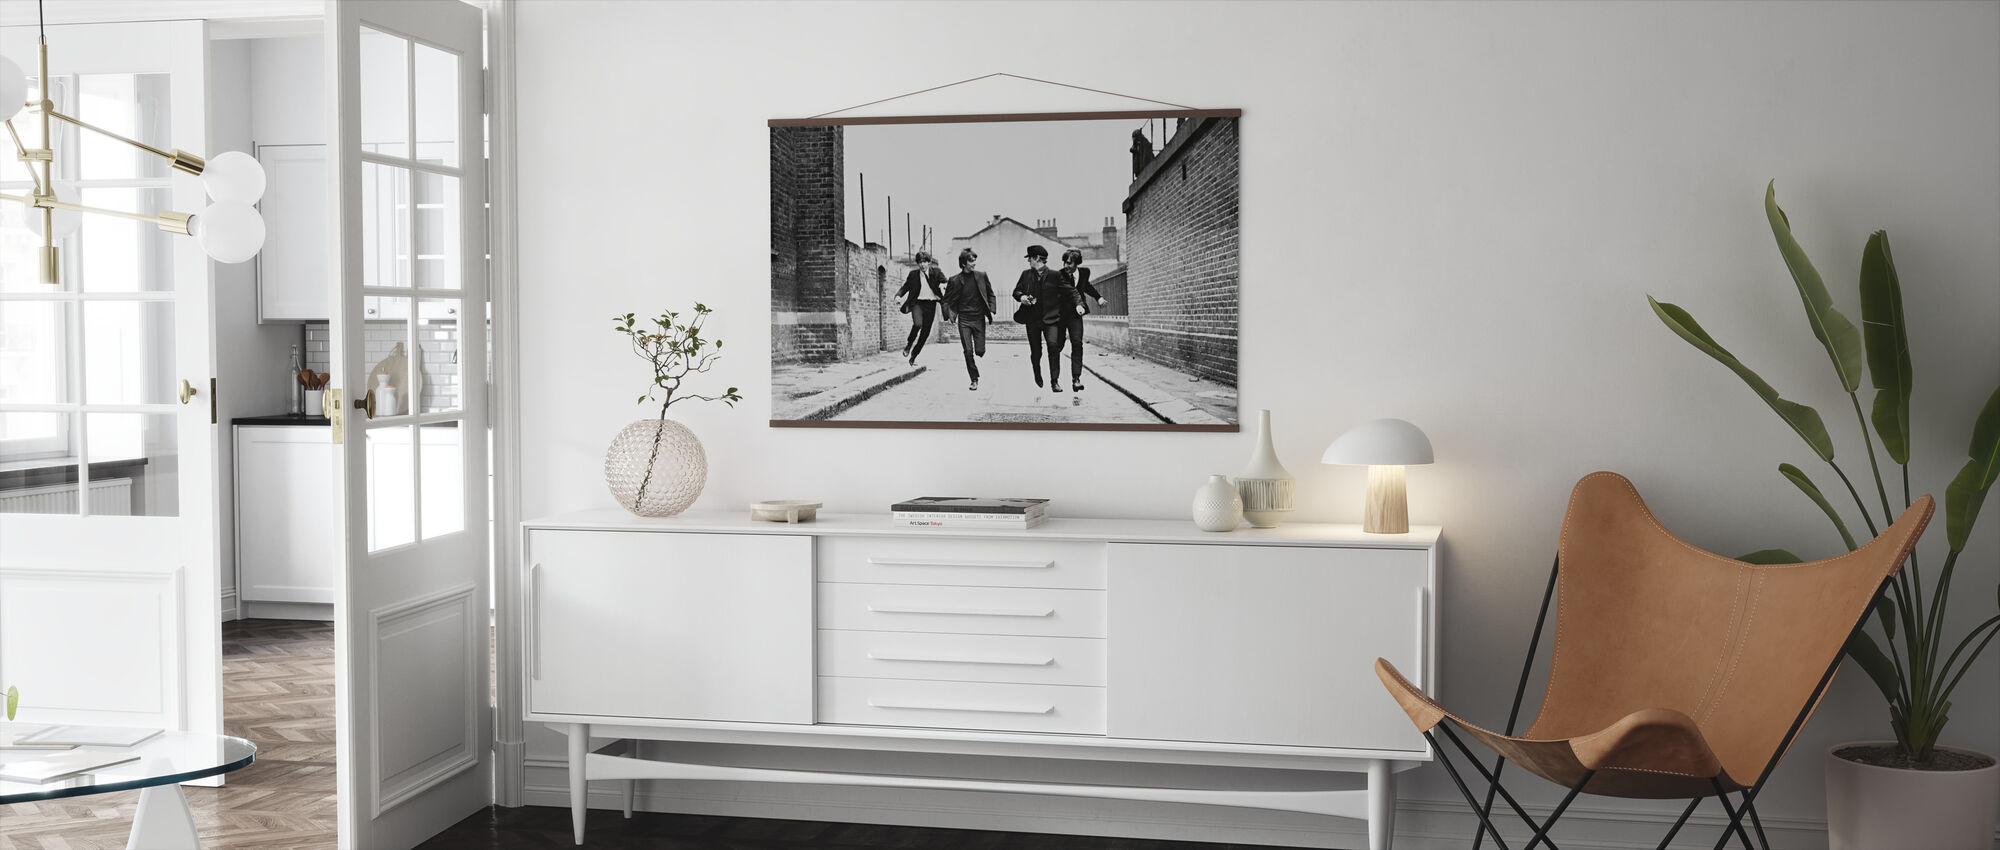 Beatles in a Hard Days Night - Poster - Living Room